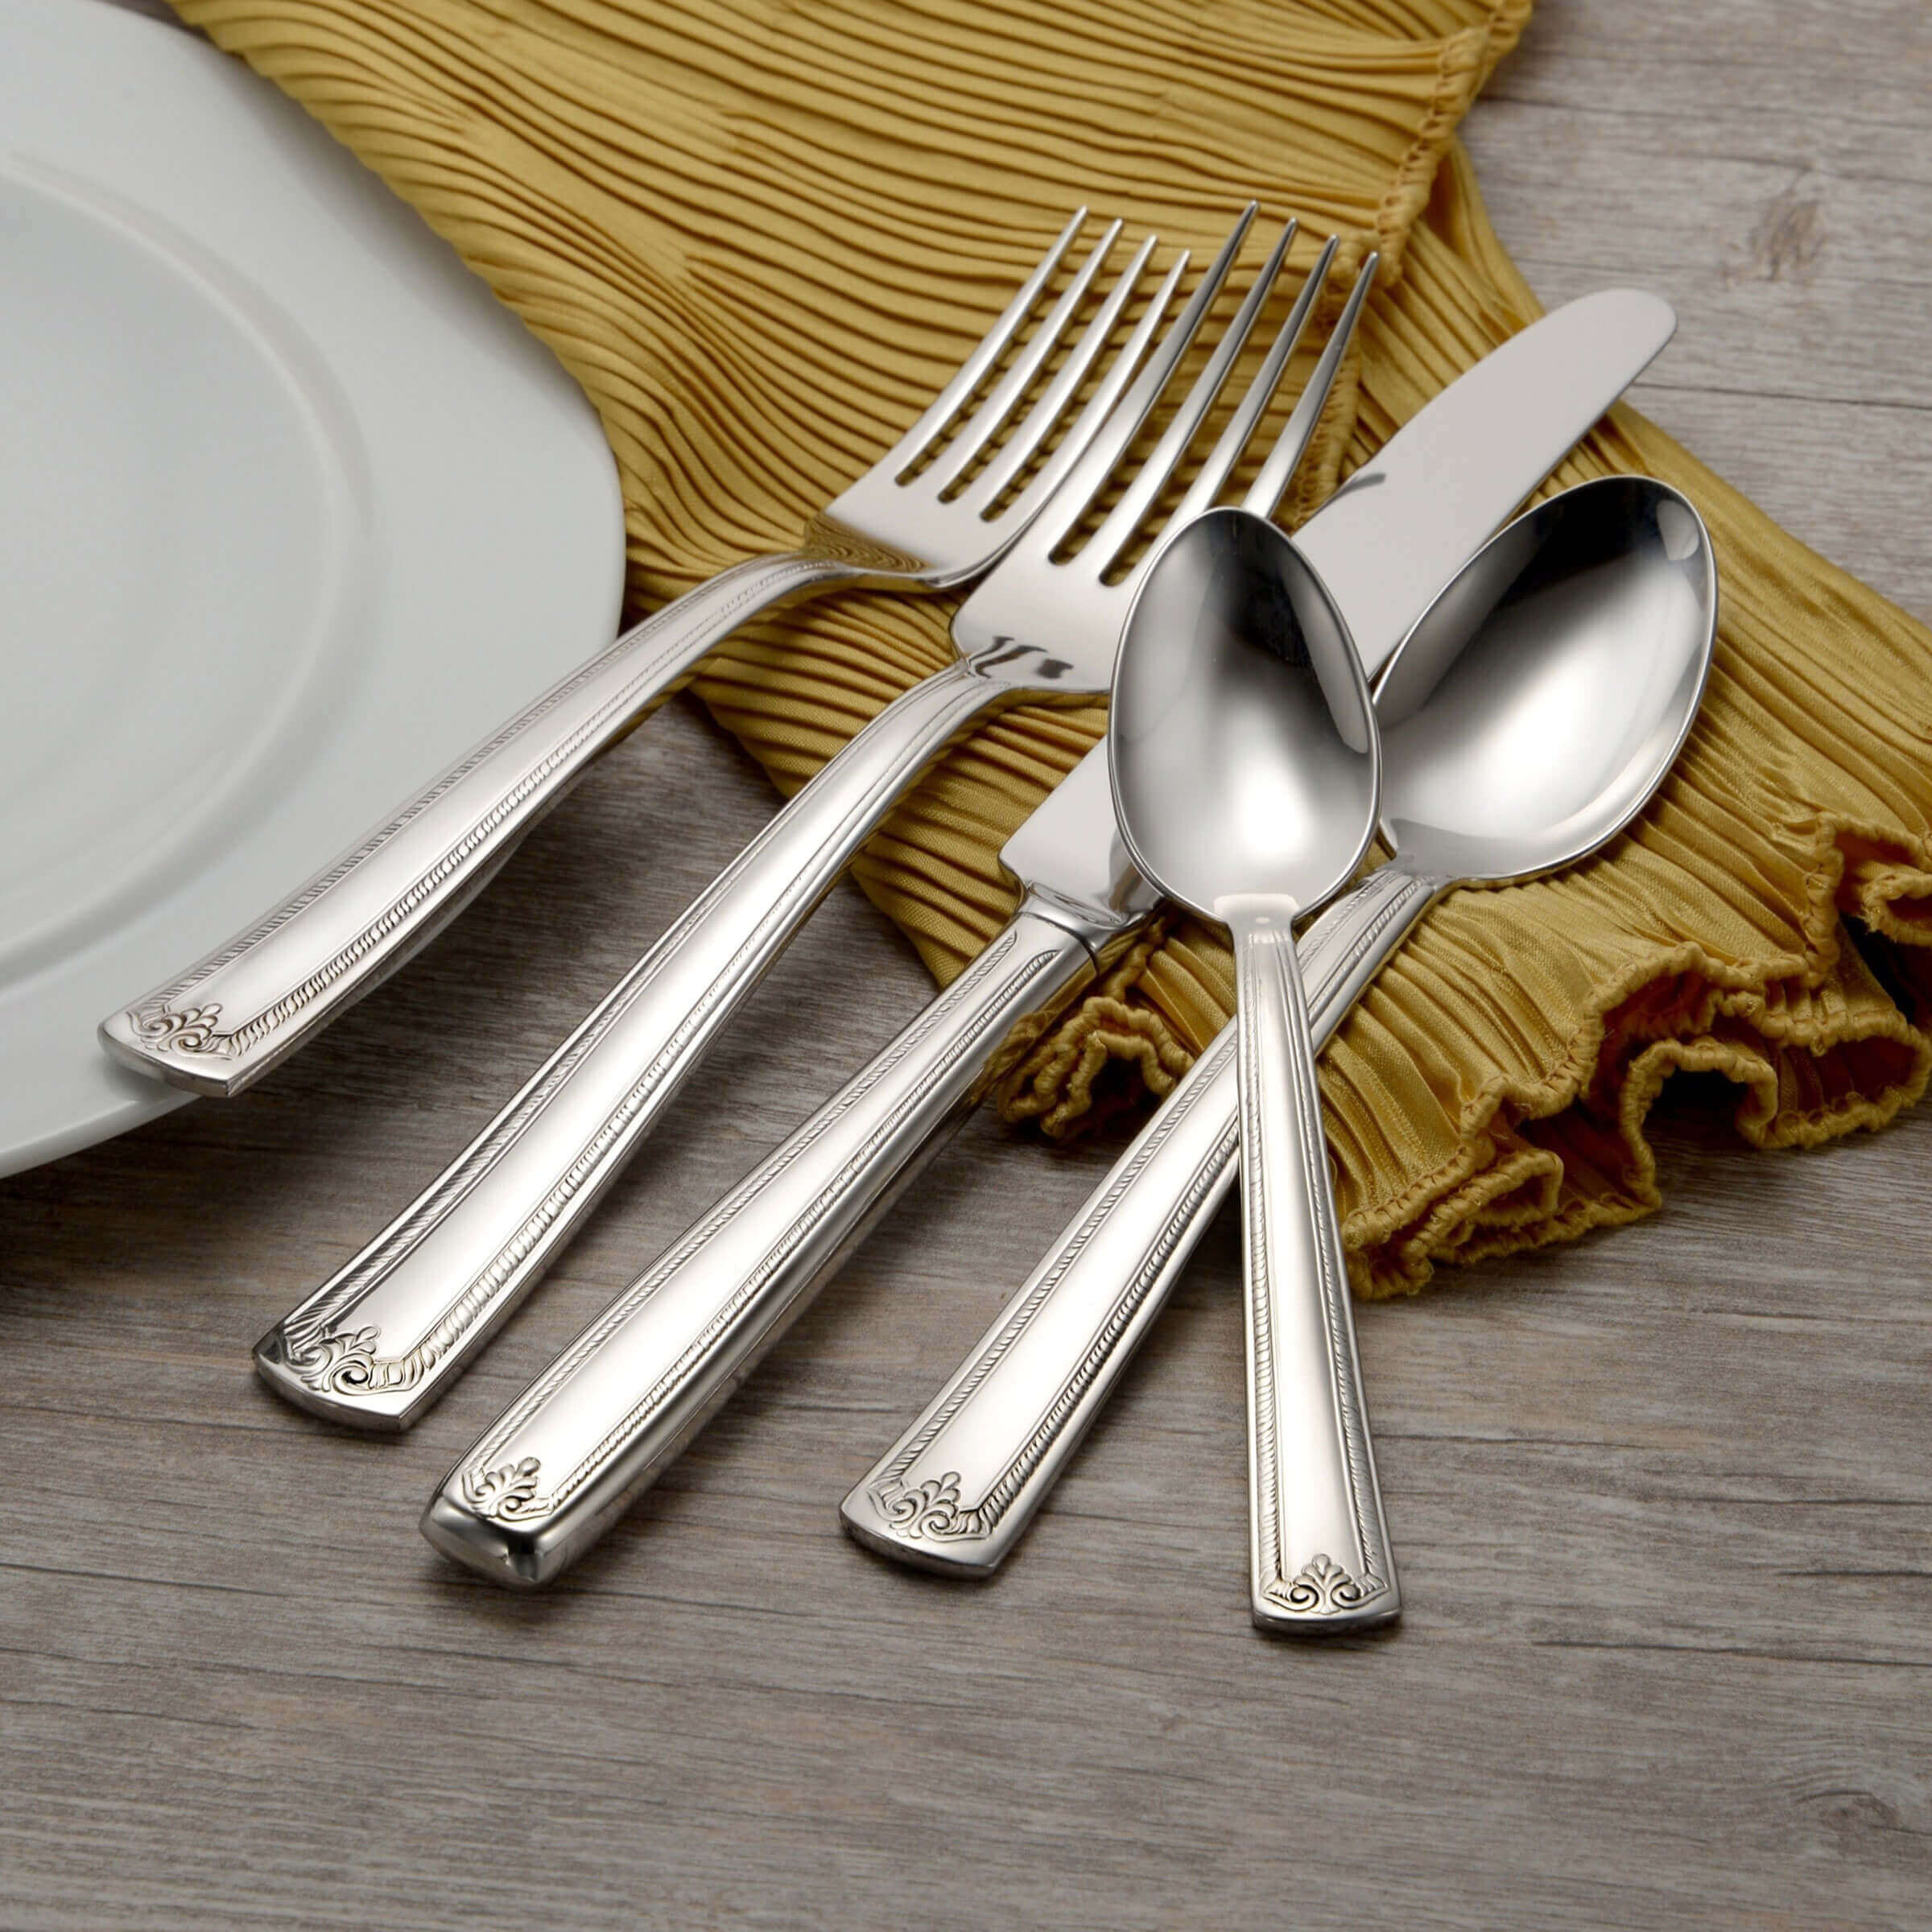 Used Flatware For Sale Liberty Tabletop Offers Quality Value And Design For Your Table